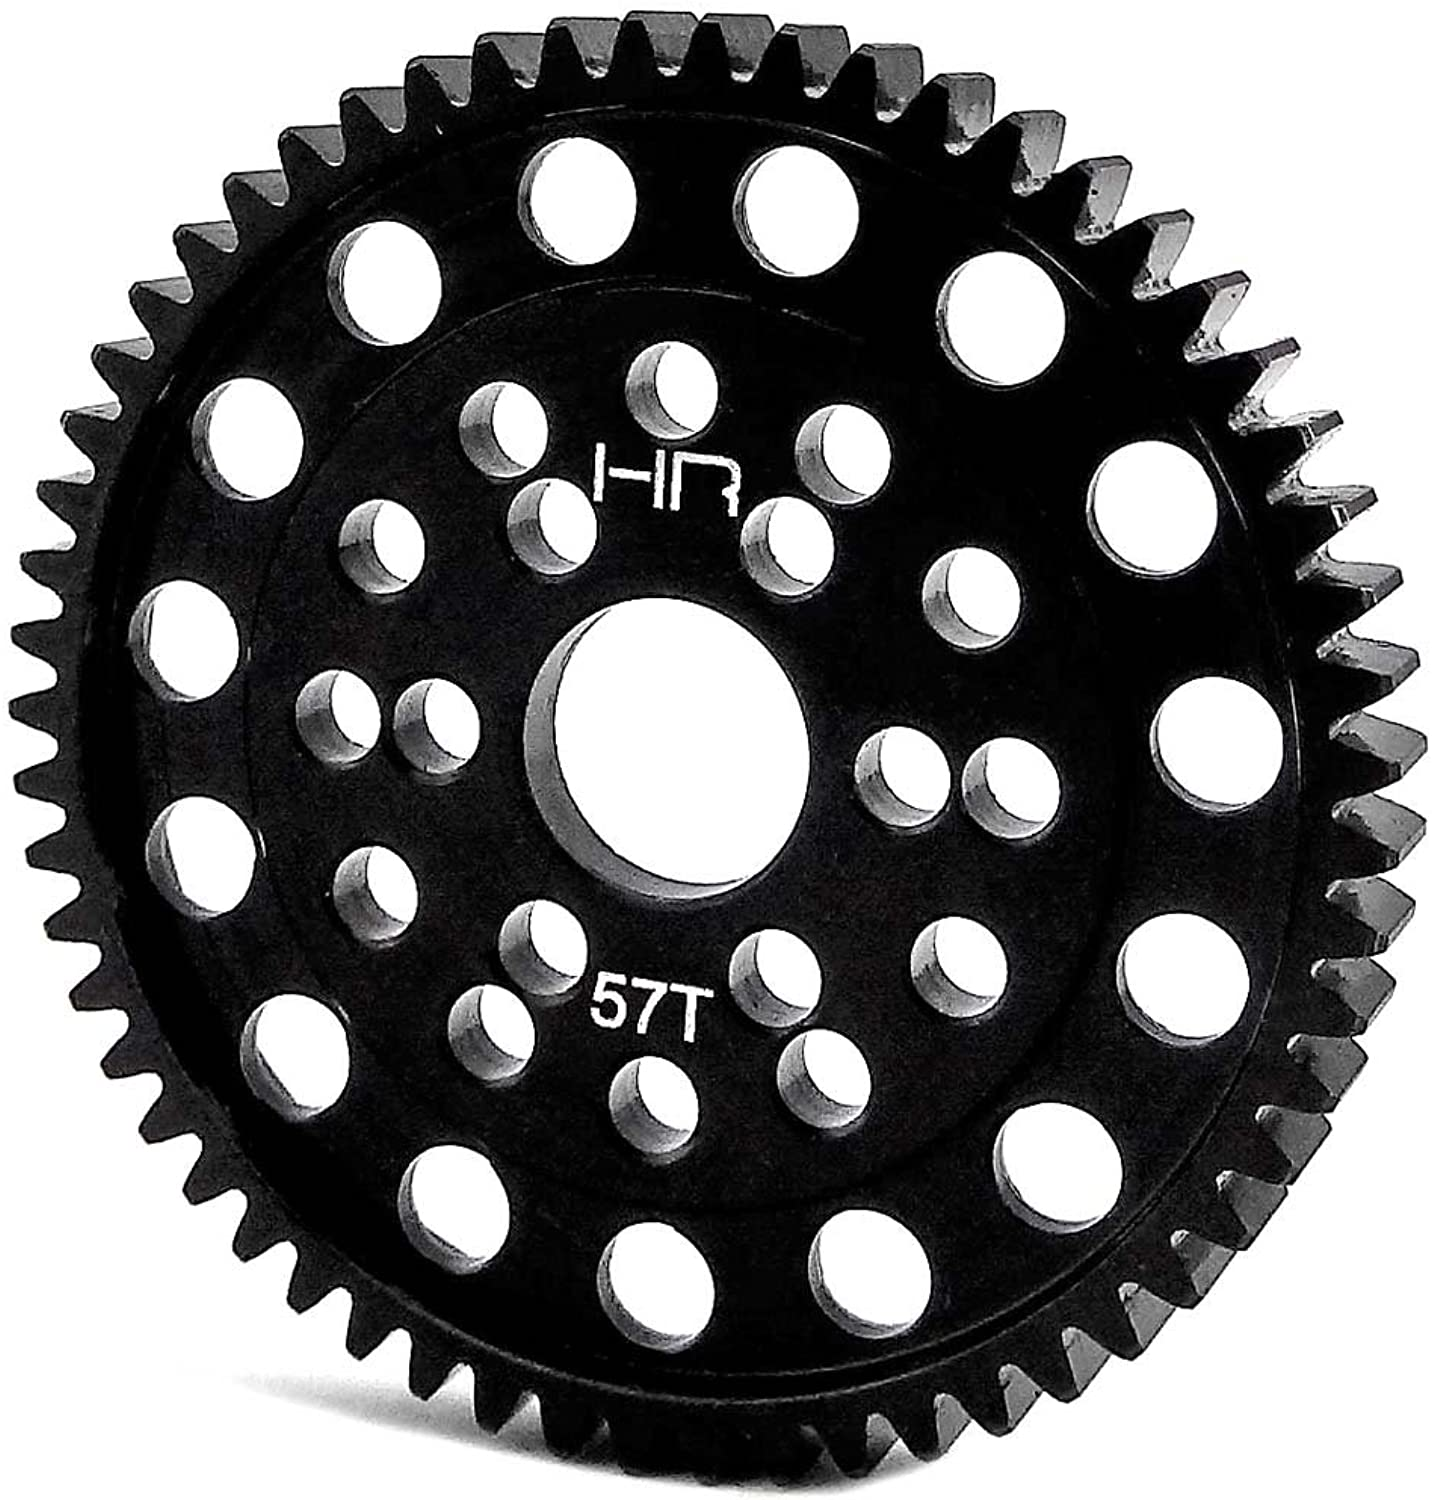 caliente Racing SWRA257 Steel Super Duty 32p 57t Spur Gear by caliente Racing